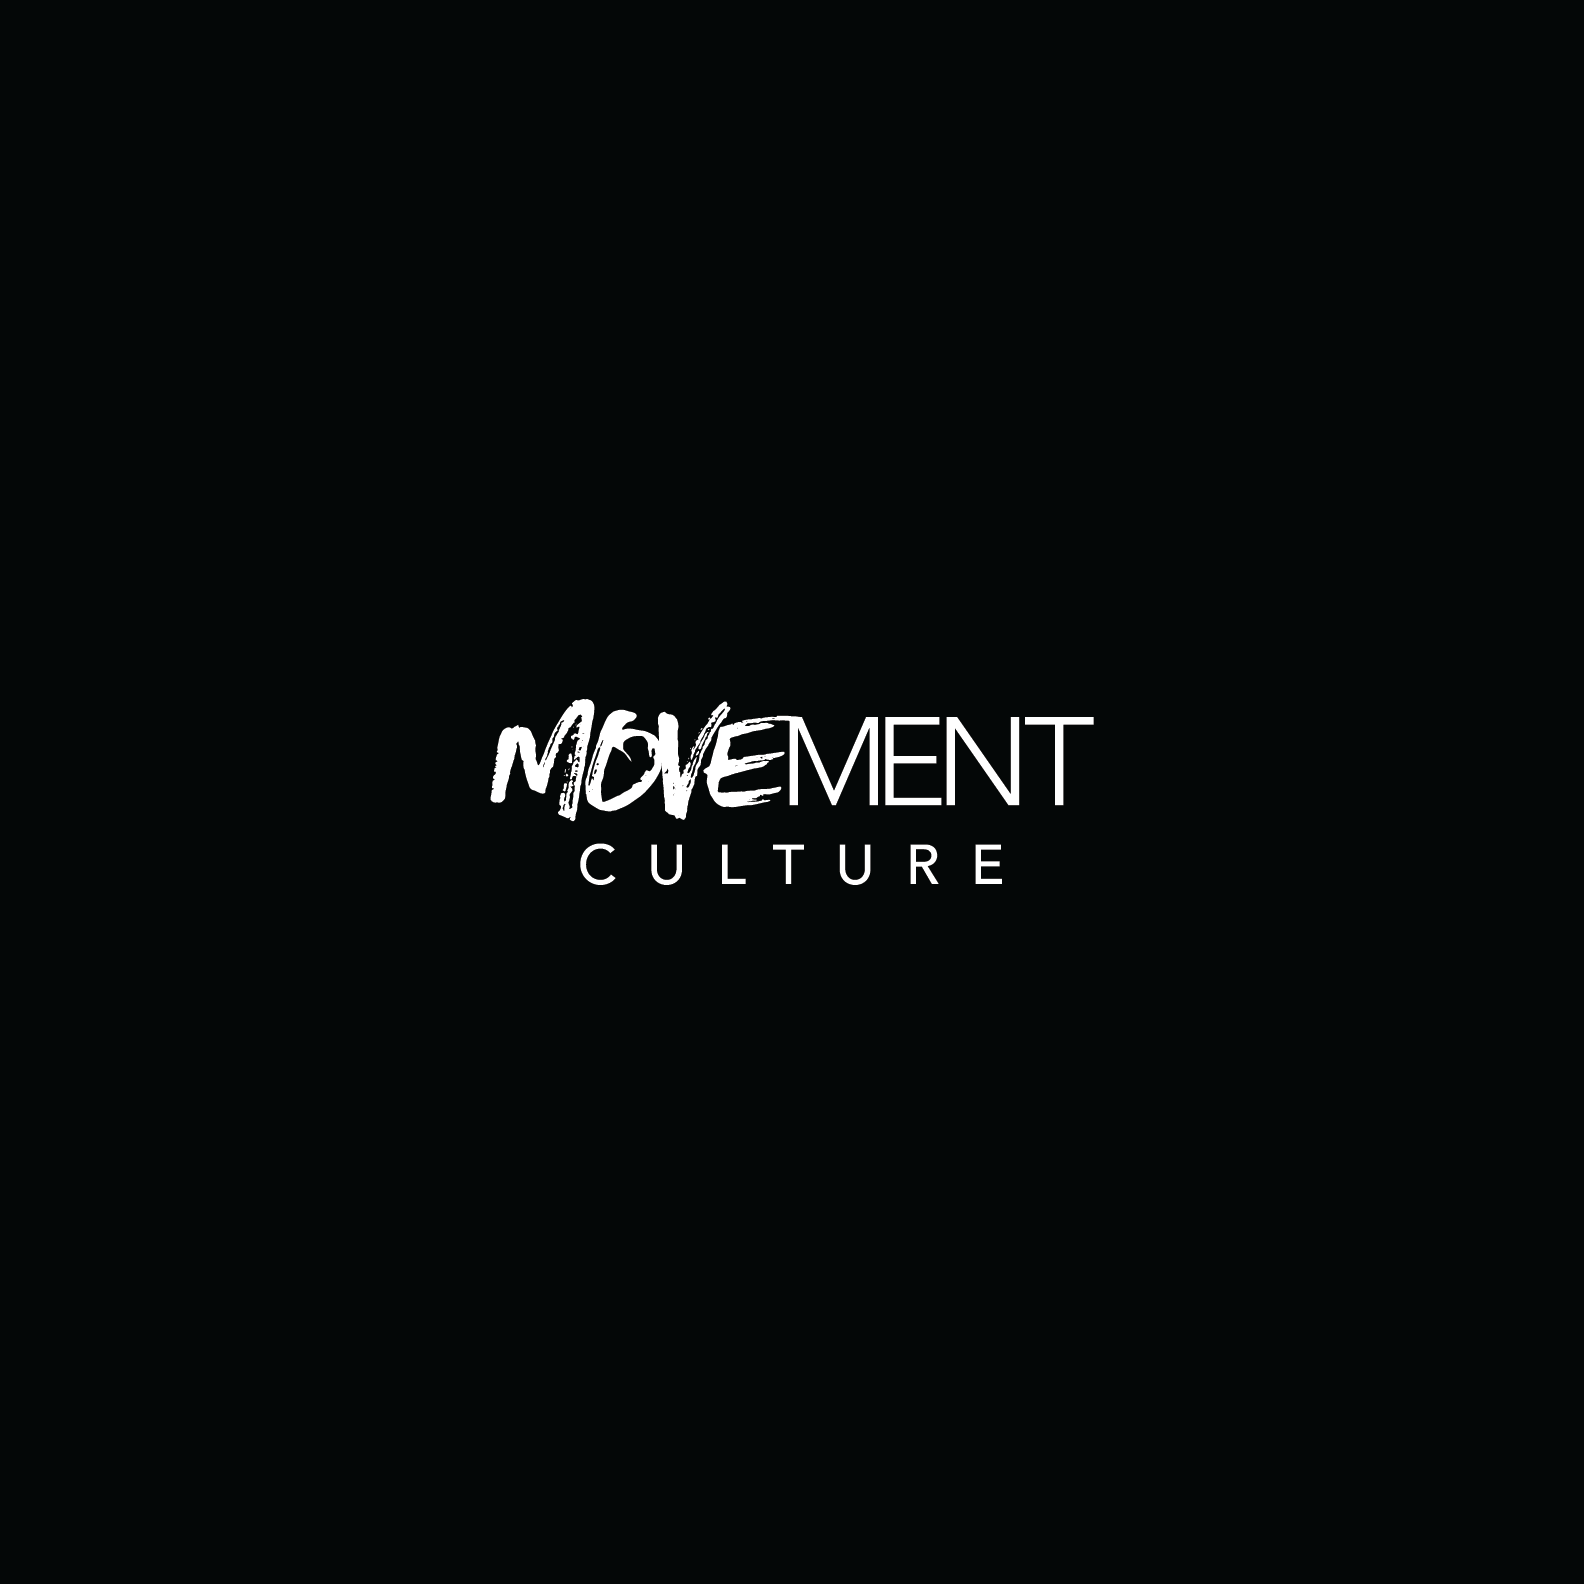 Logo_Movement_Culture